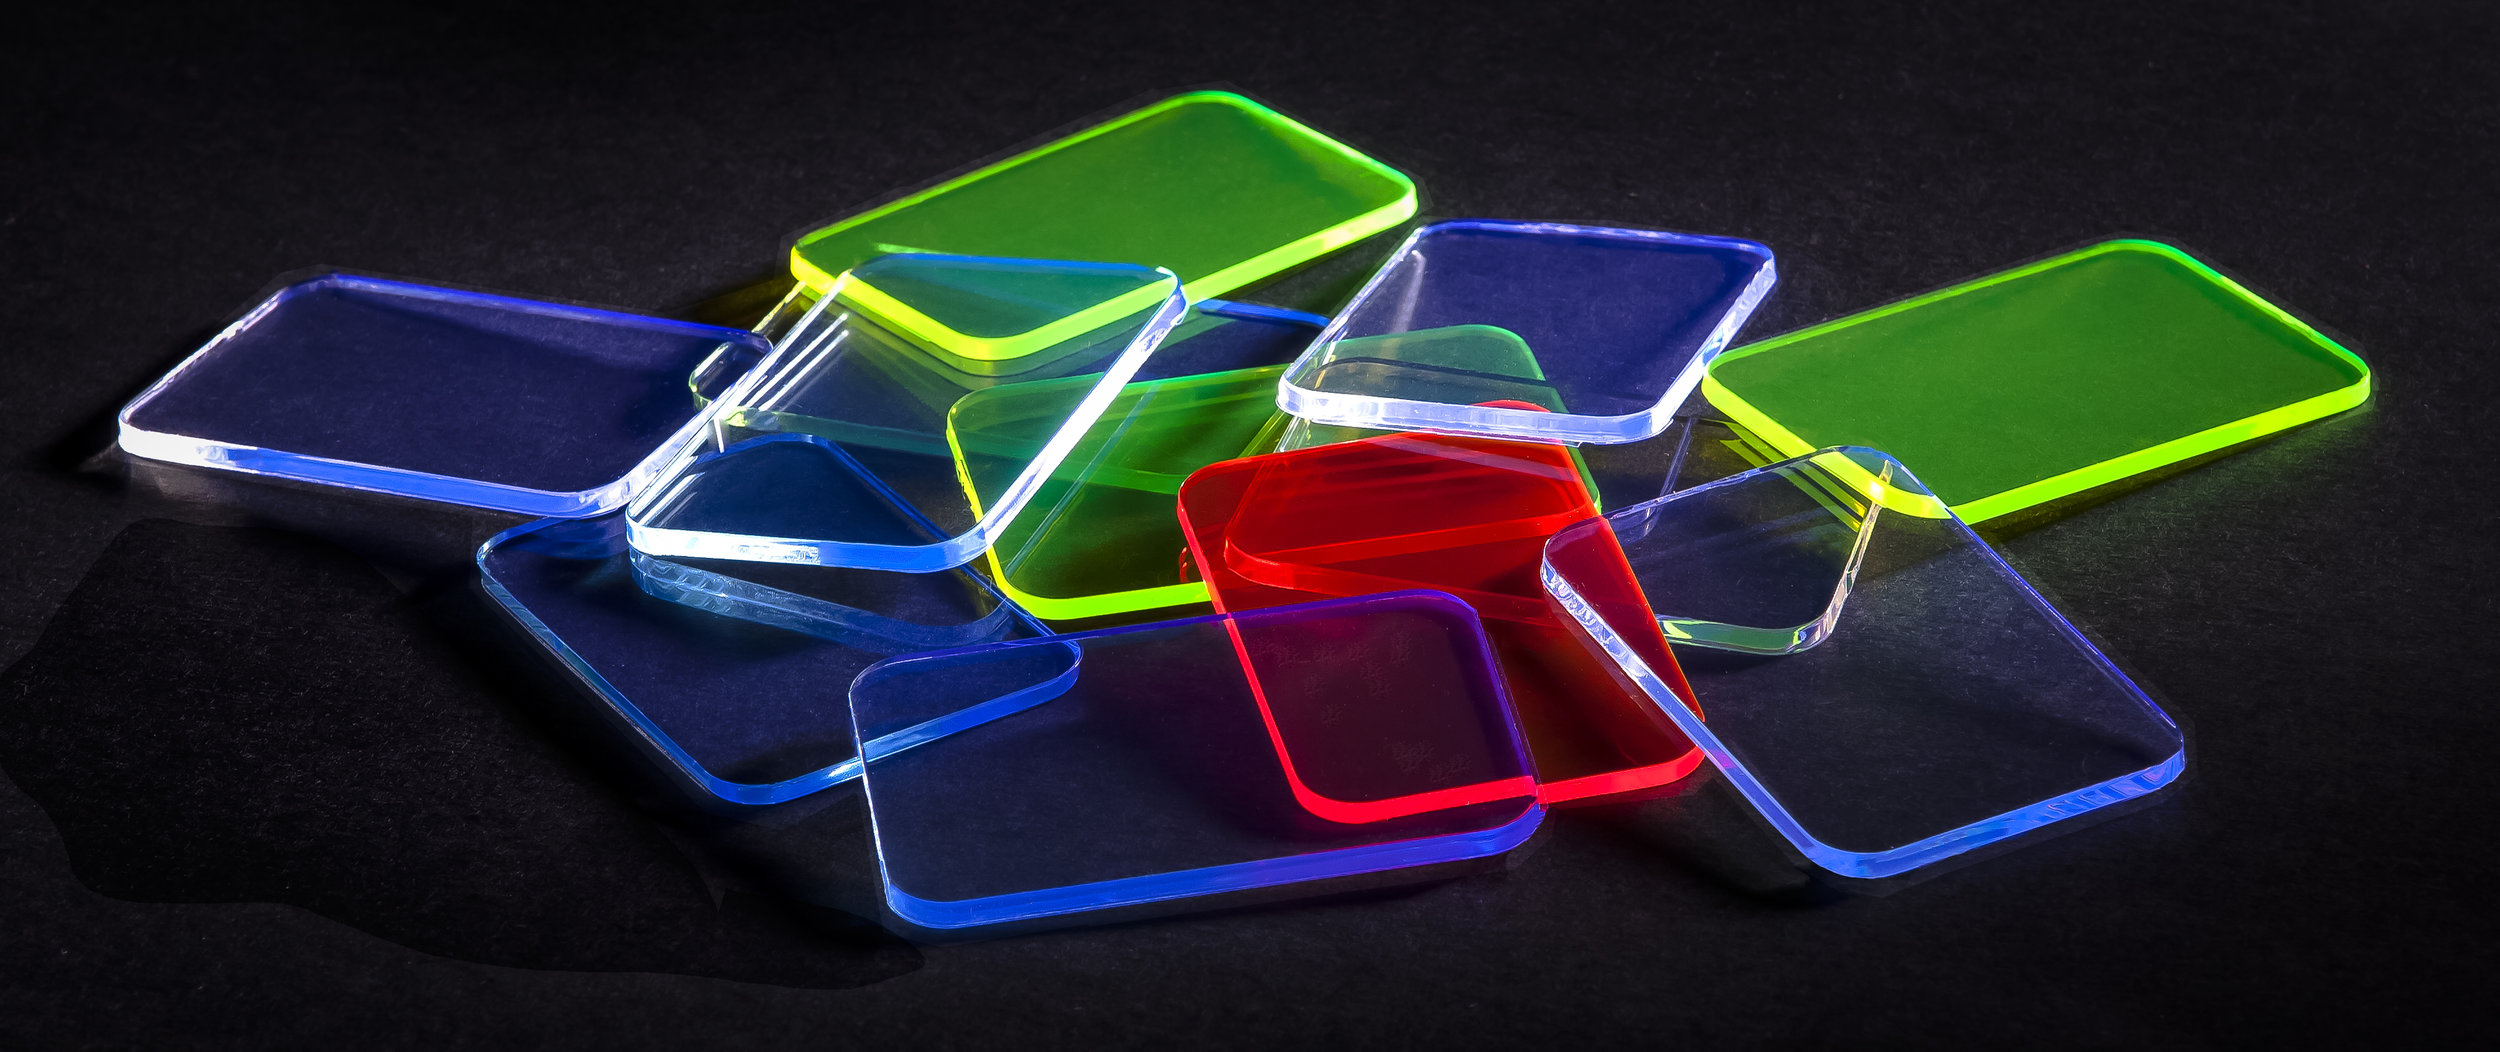 OptiColor - B - Colored Chips Mixed 12-After.jpg